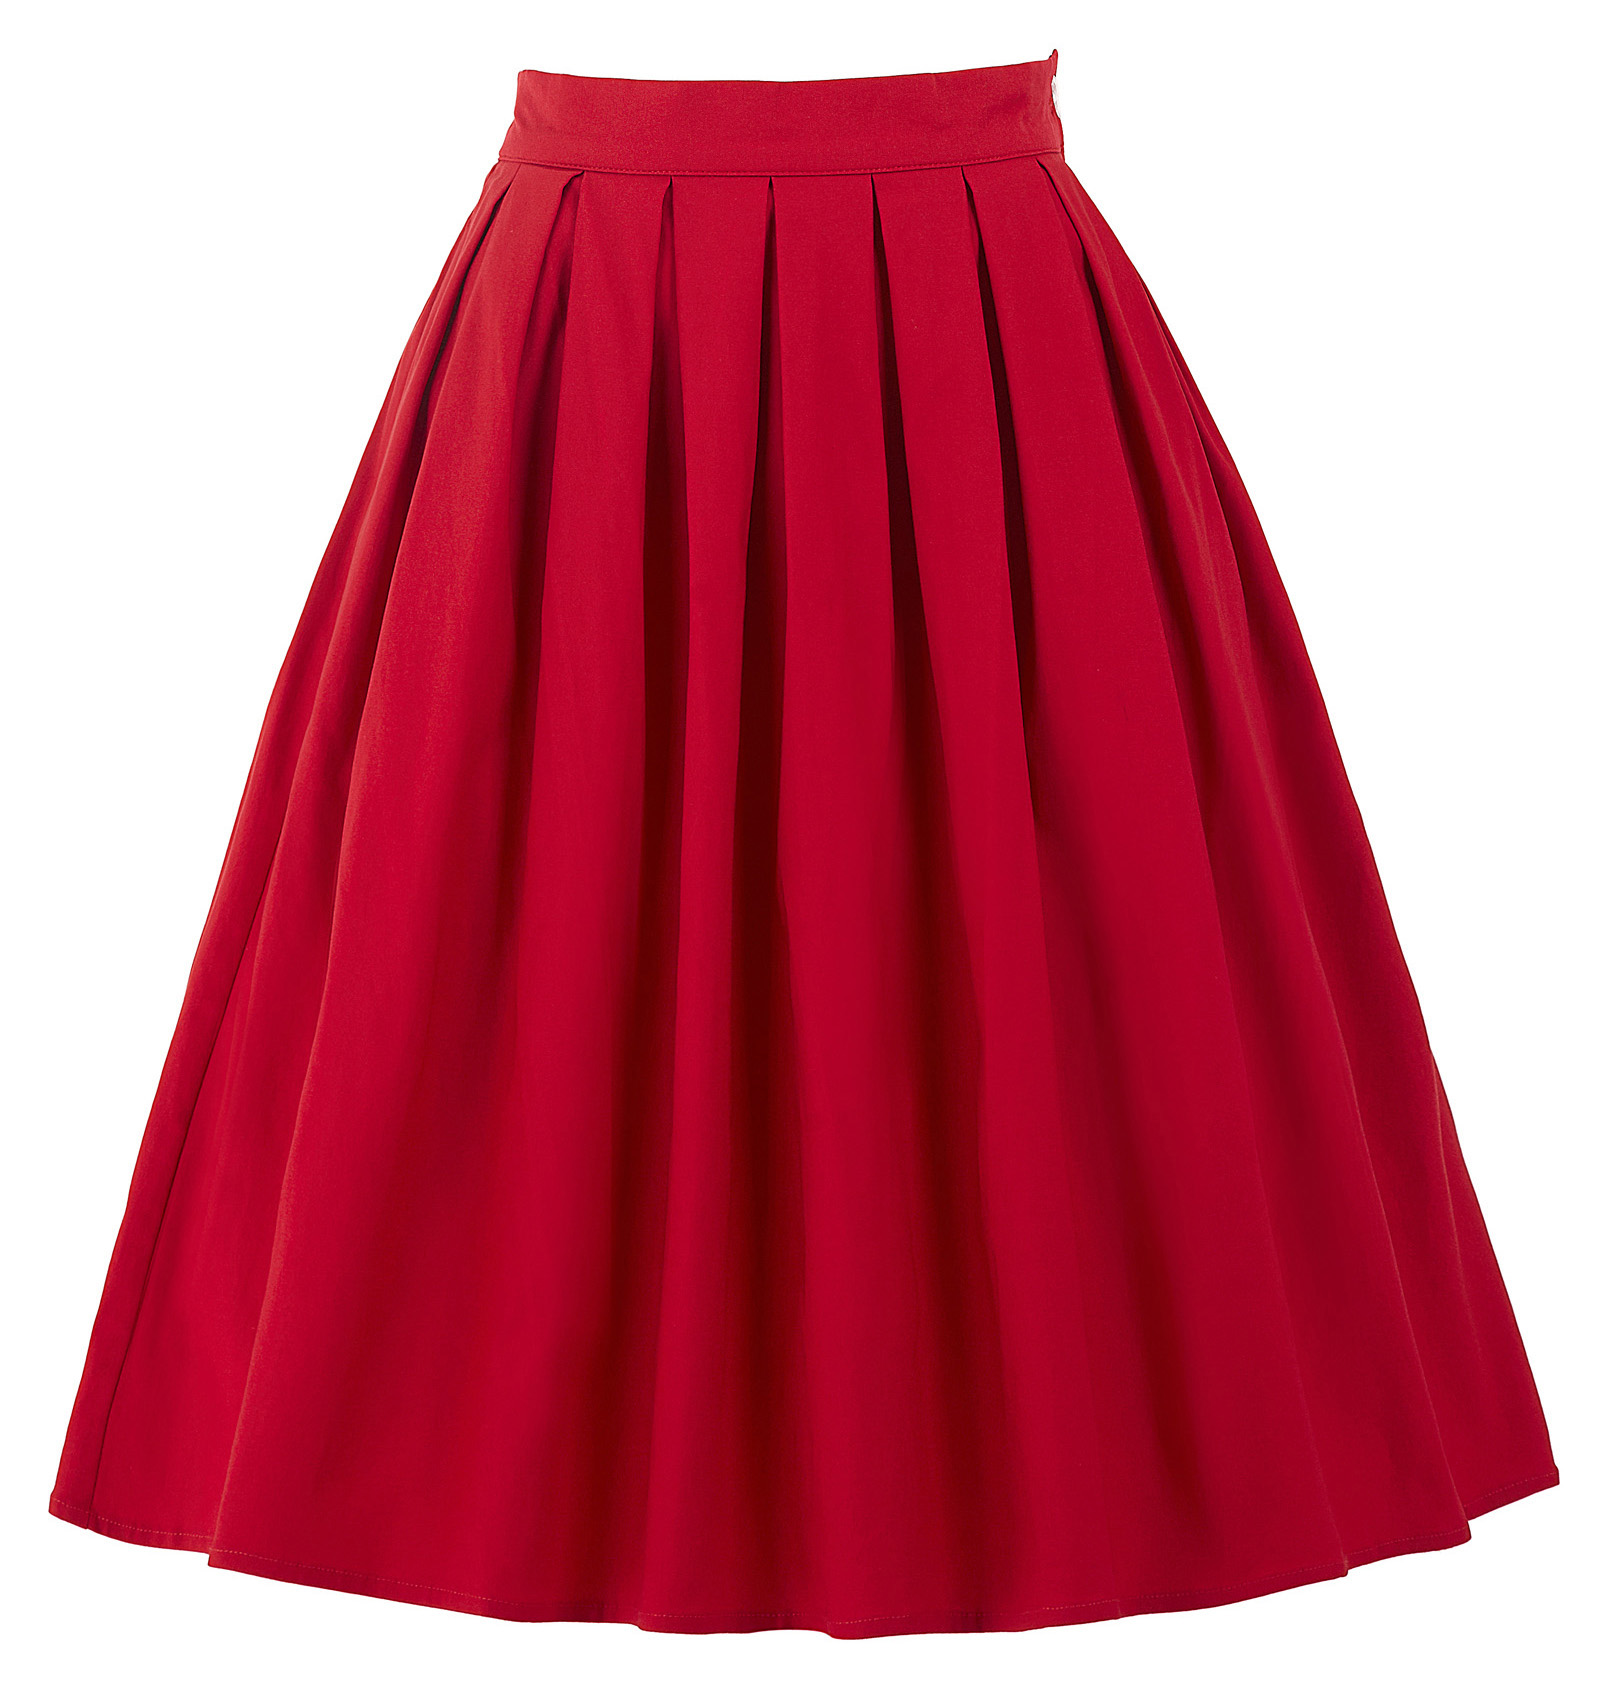 89ecba765c21 Vintage 1950s Plain Red Full Circle Knee Length Woman Skirt Gothic Midi  Cotton Basic Plus Size Skirts